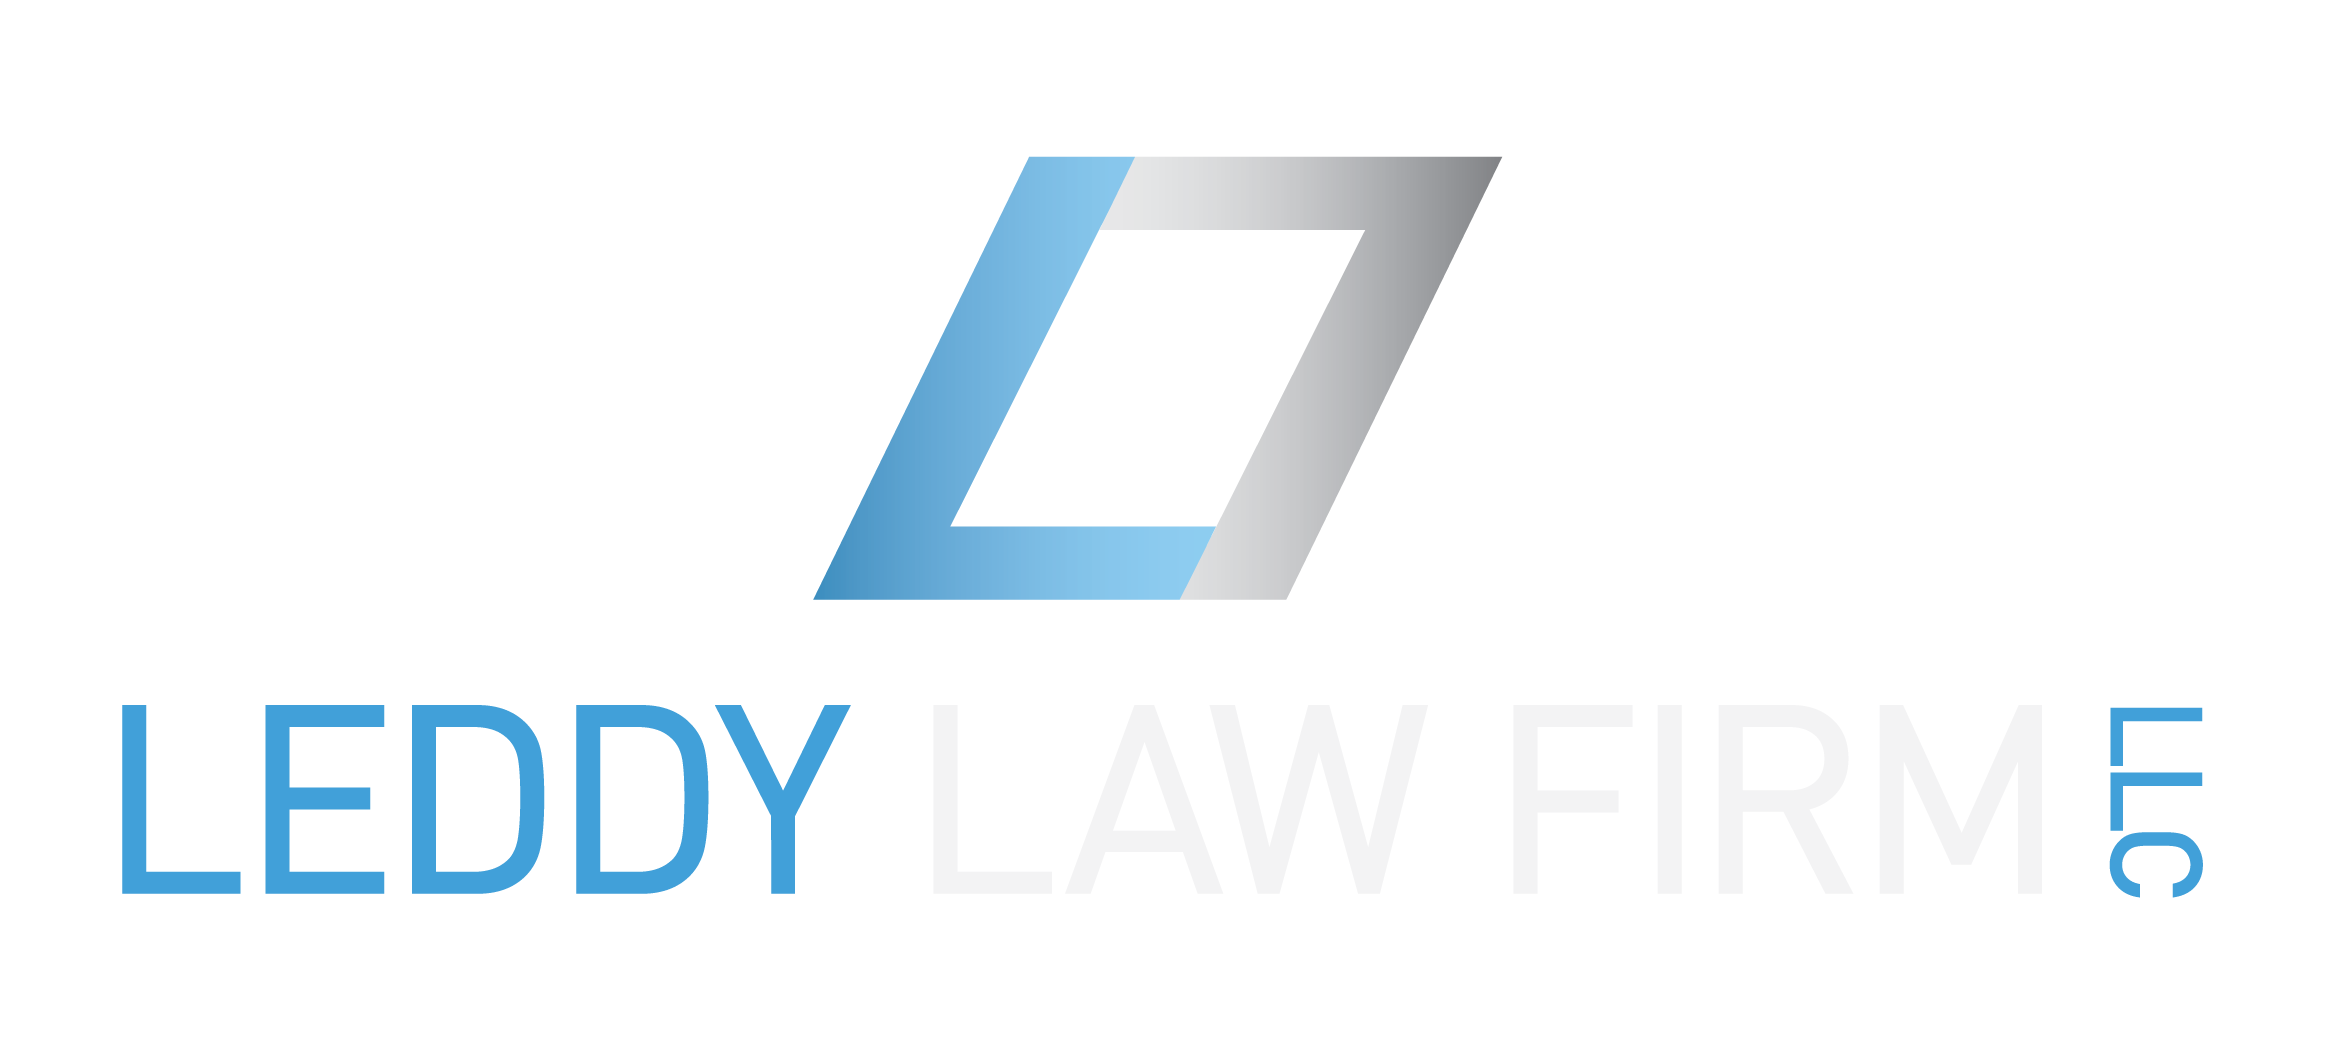 Personal Injury Victims in Columbia, SC Stand a Better Chance With Leddy Law Firm, LLC